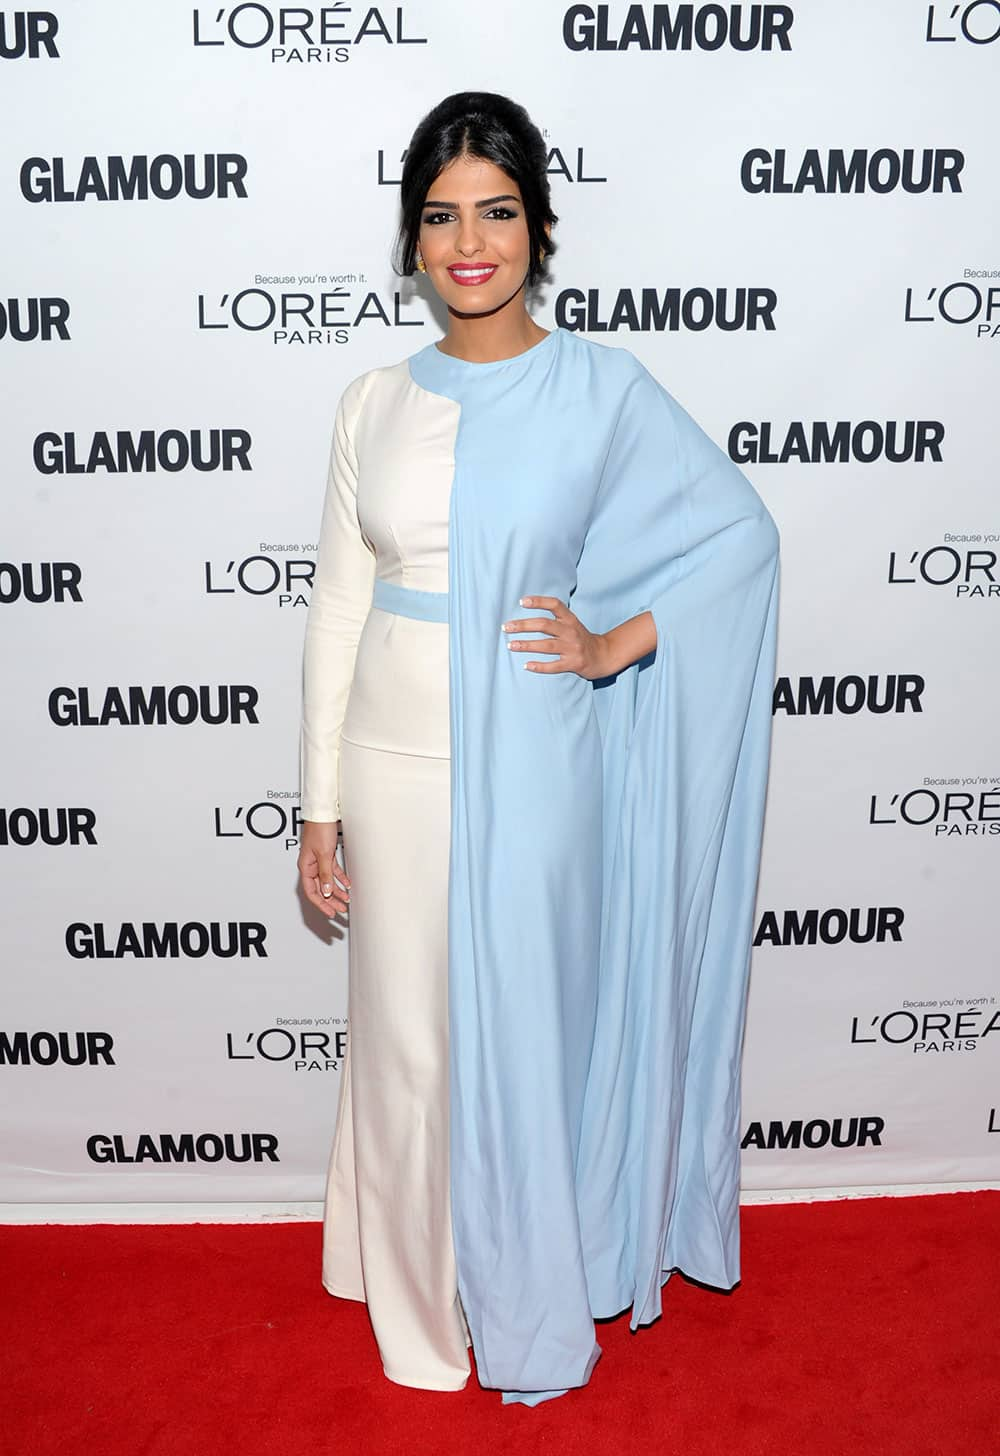 Saudi Arabian Princess Ameerah Al-Taweel attends the 23rd Annual Glamour Women of the Year Awards hosted by Glamour Magazine at Carnegie Hall in New York.